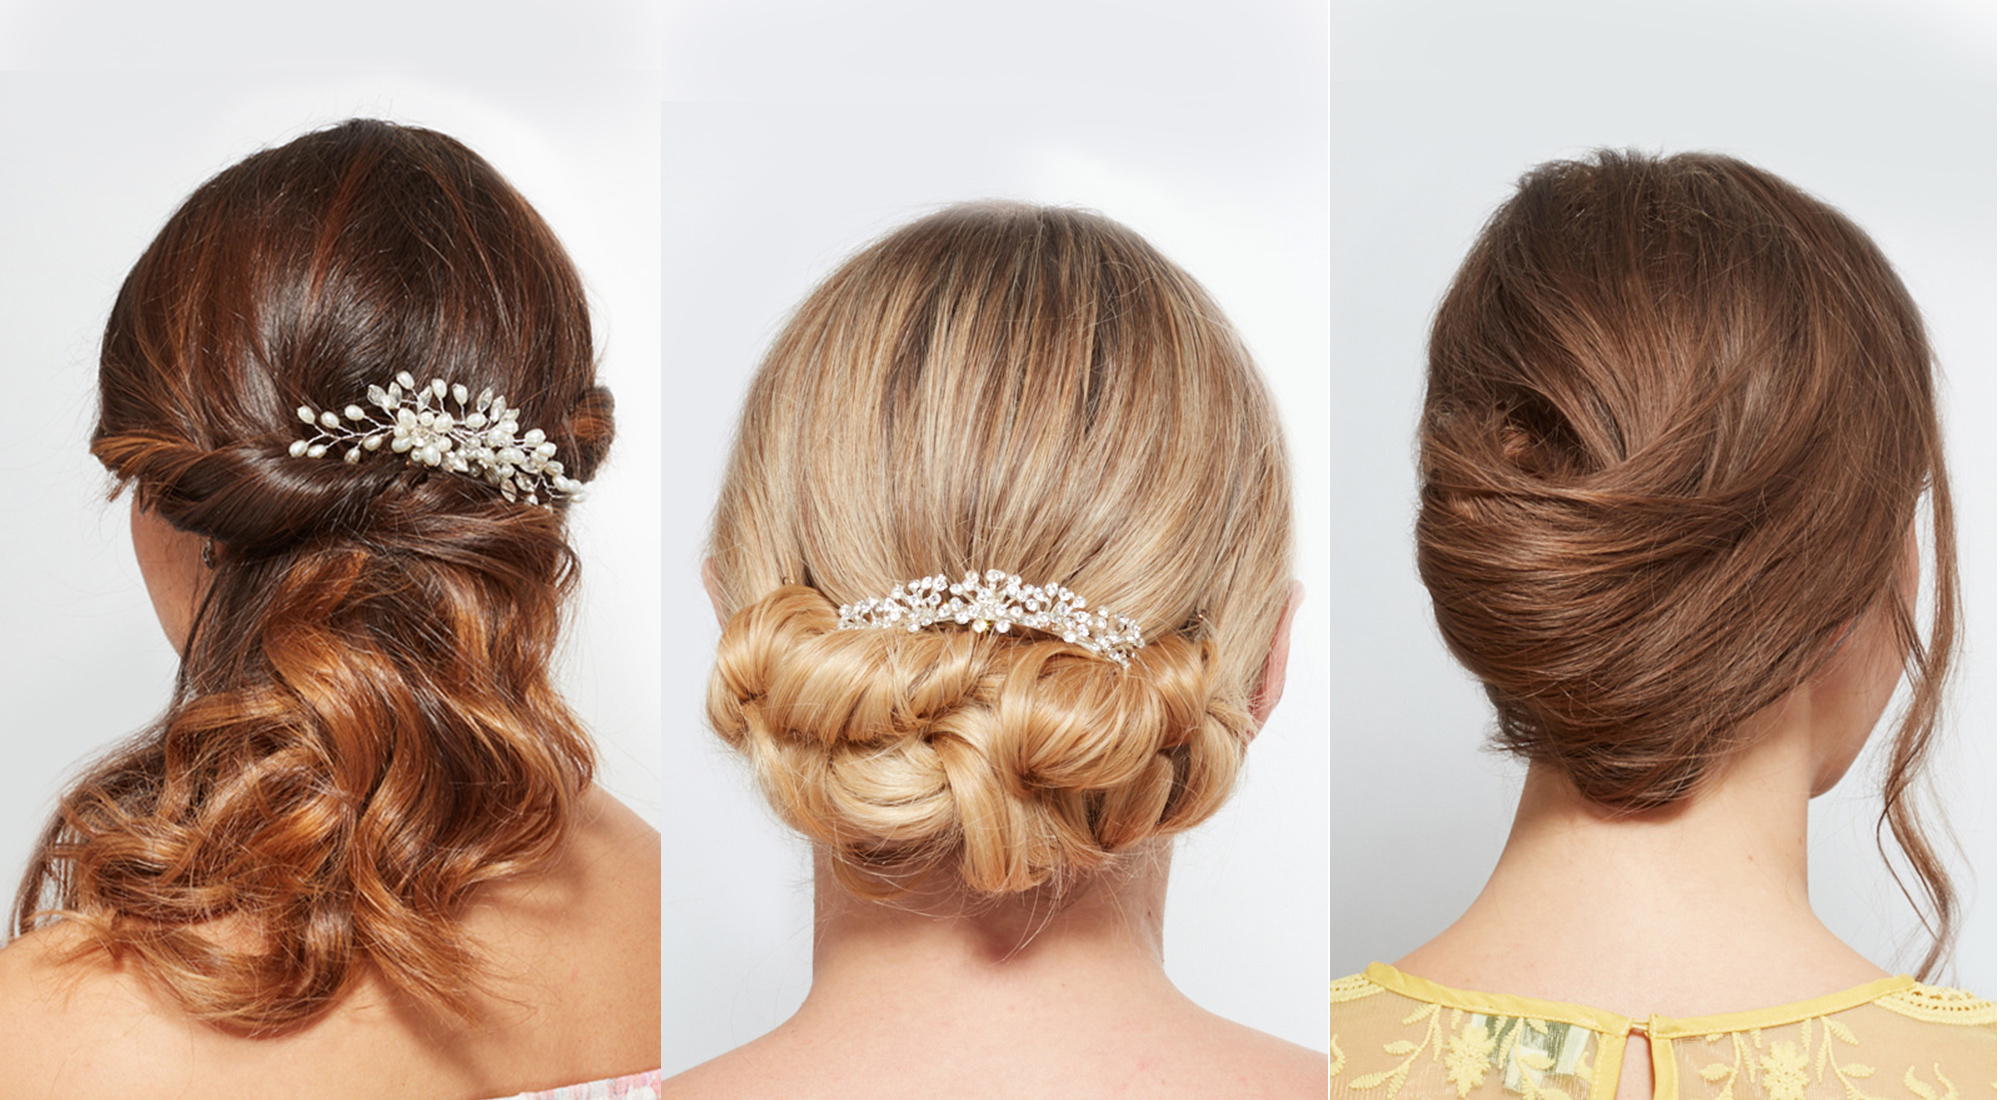 5 Bridesmaid Hairstyle Ideas | blow LTD